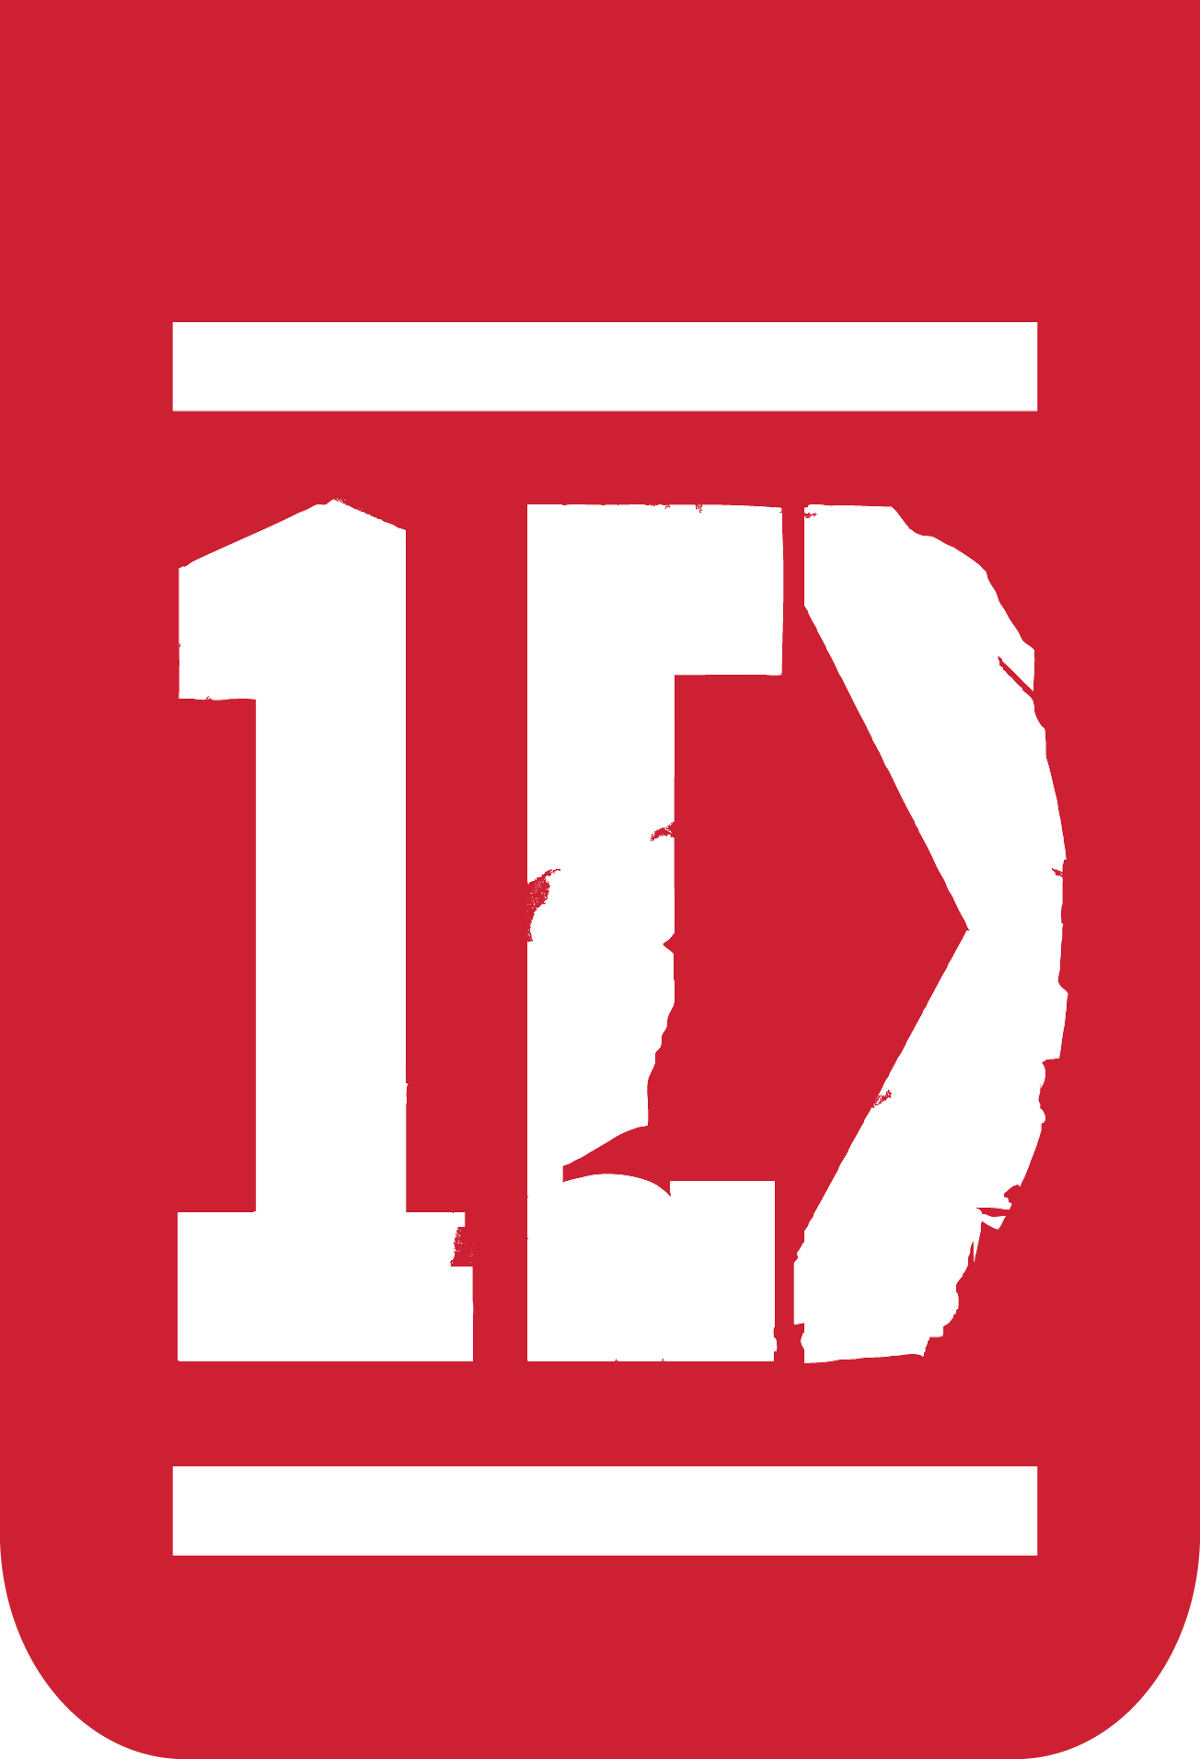 http://static.tumblr.com/gvz5exn/o42m5zoo2/one-direction-red-logo.png